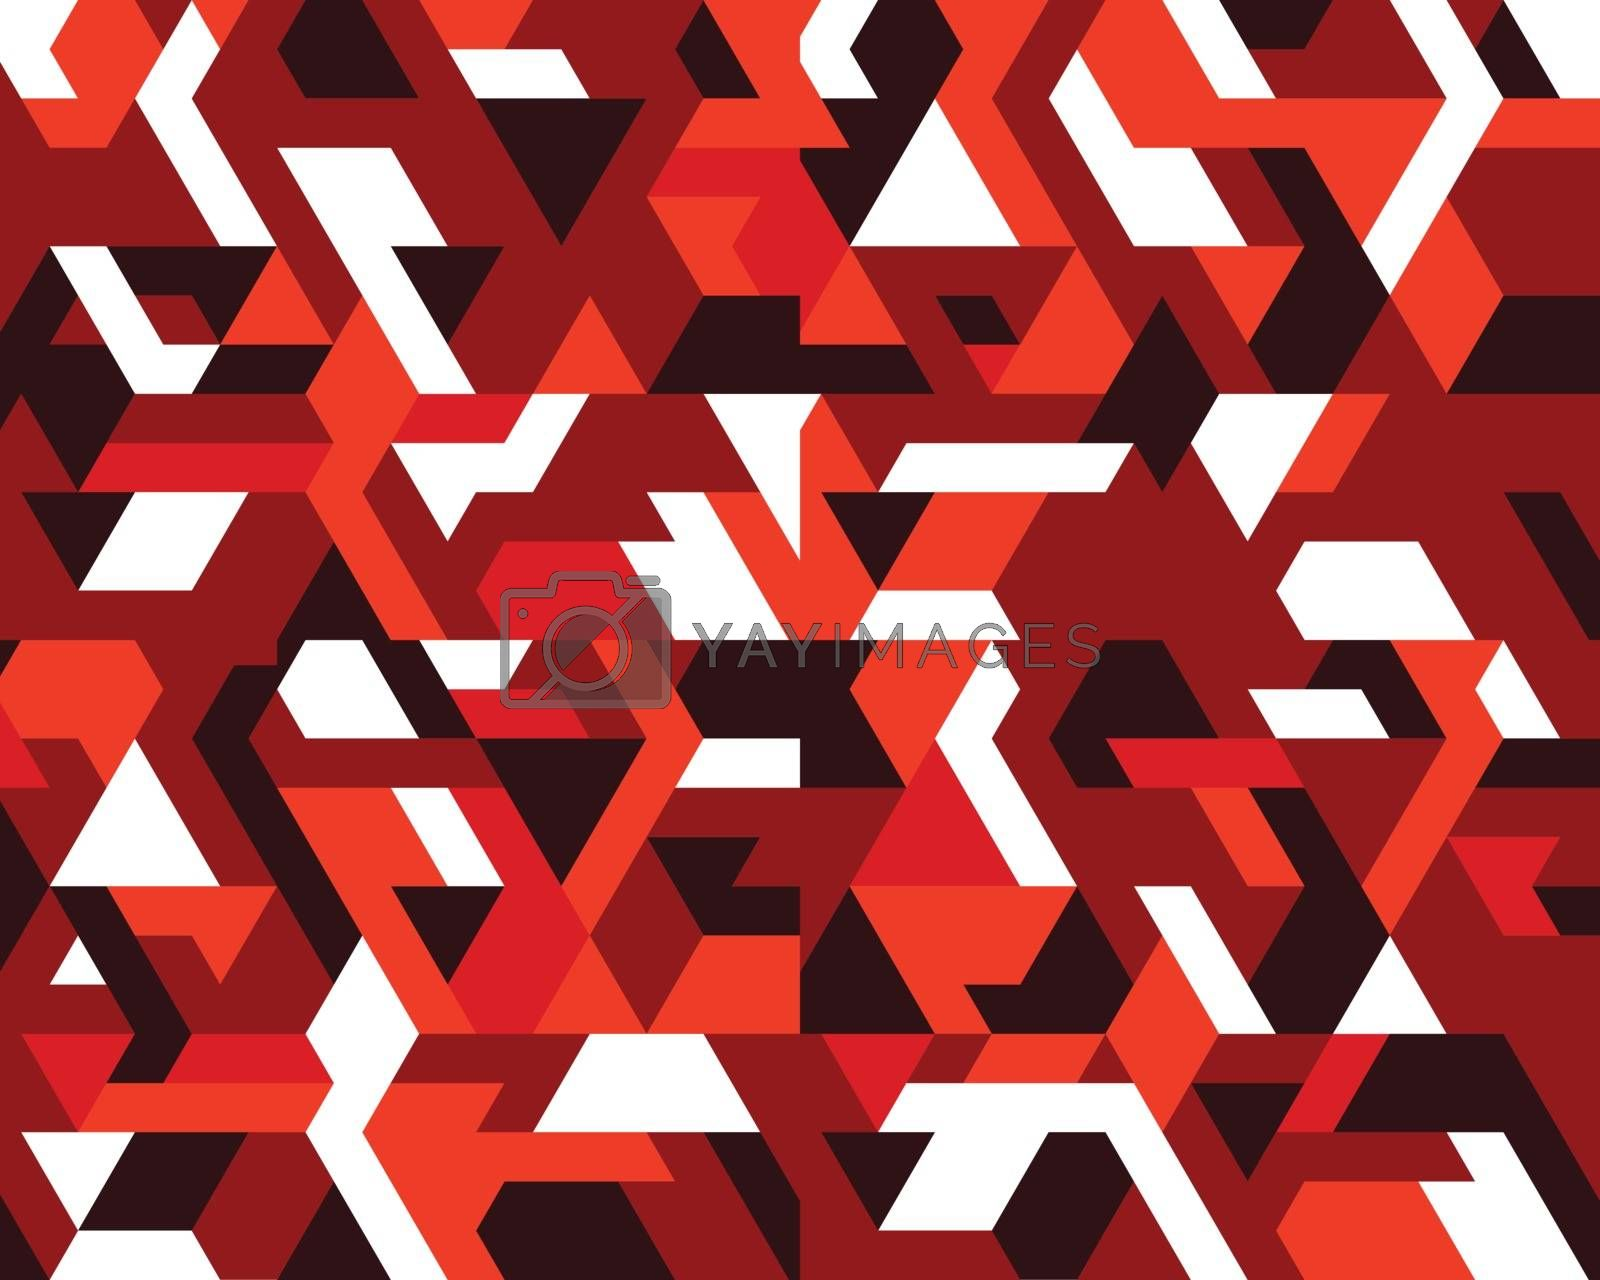 Polygonal mosaic abstract geometry background. Used for creative design templates